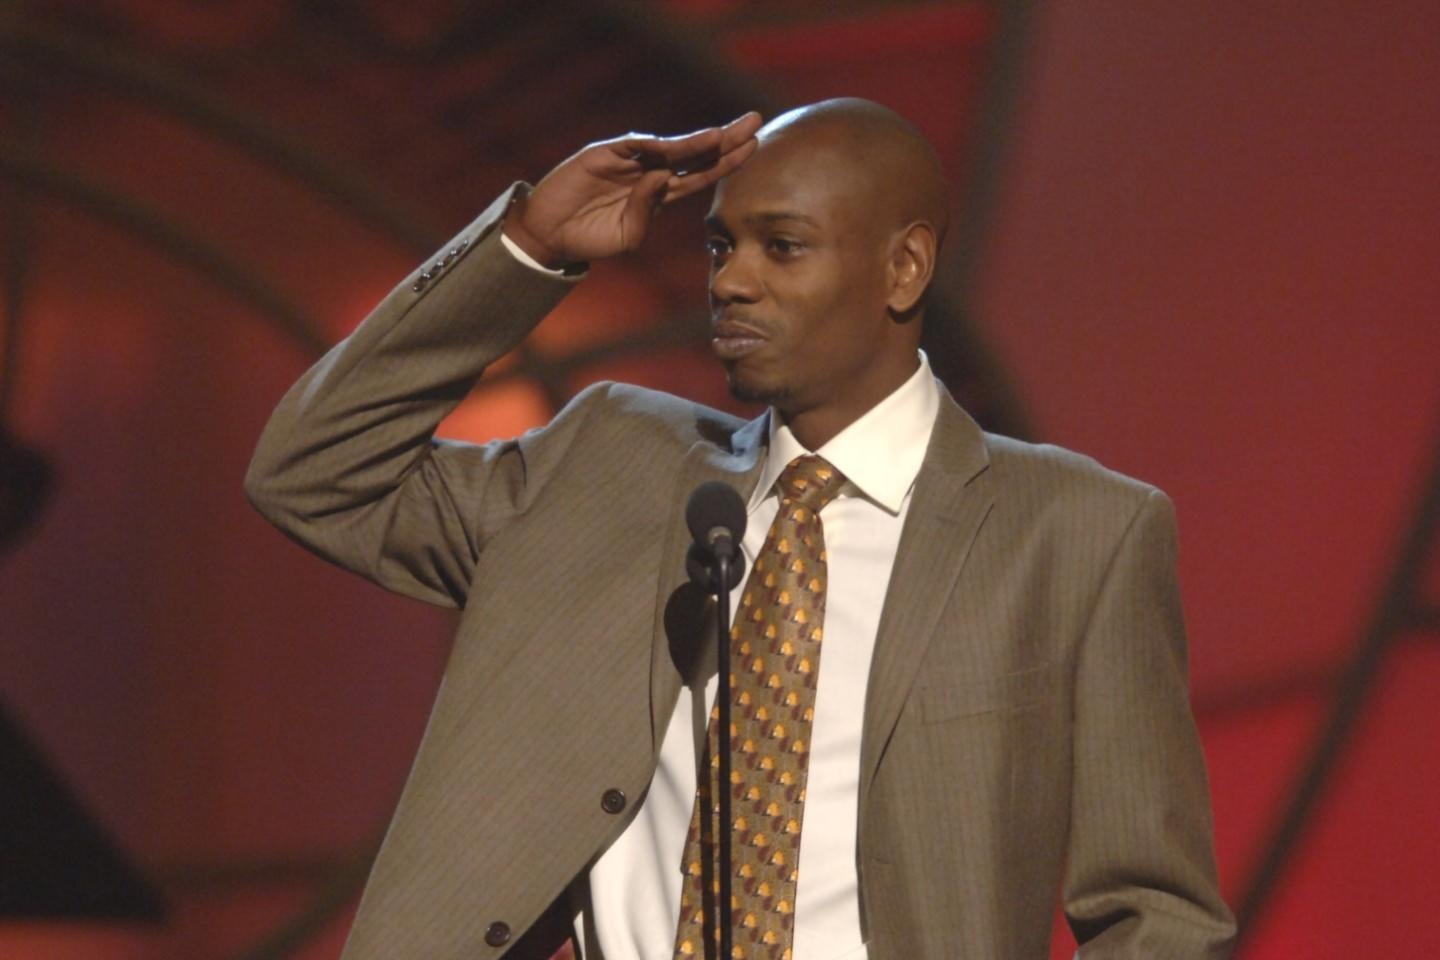 Buy Tickets for Dave Chappelle Tour Dates 2019 - viagogo